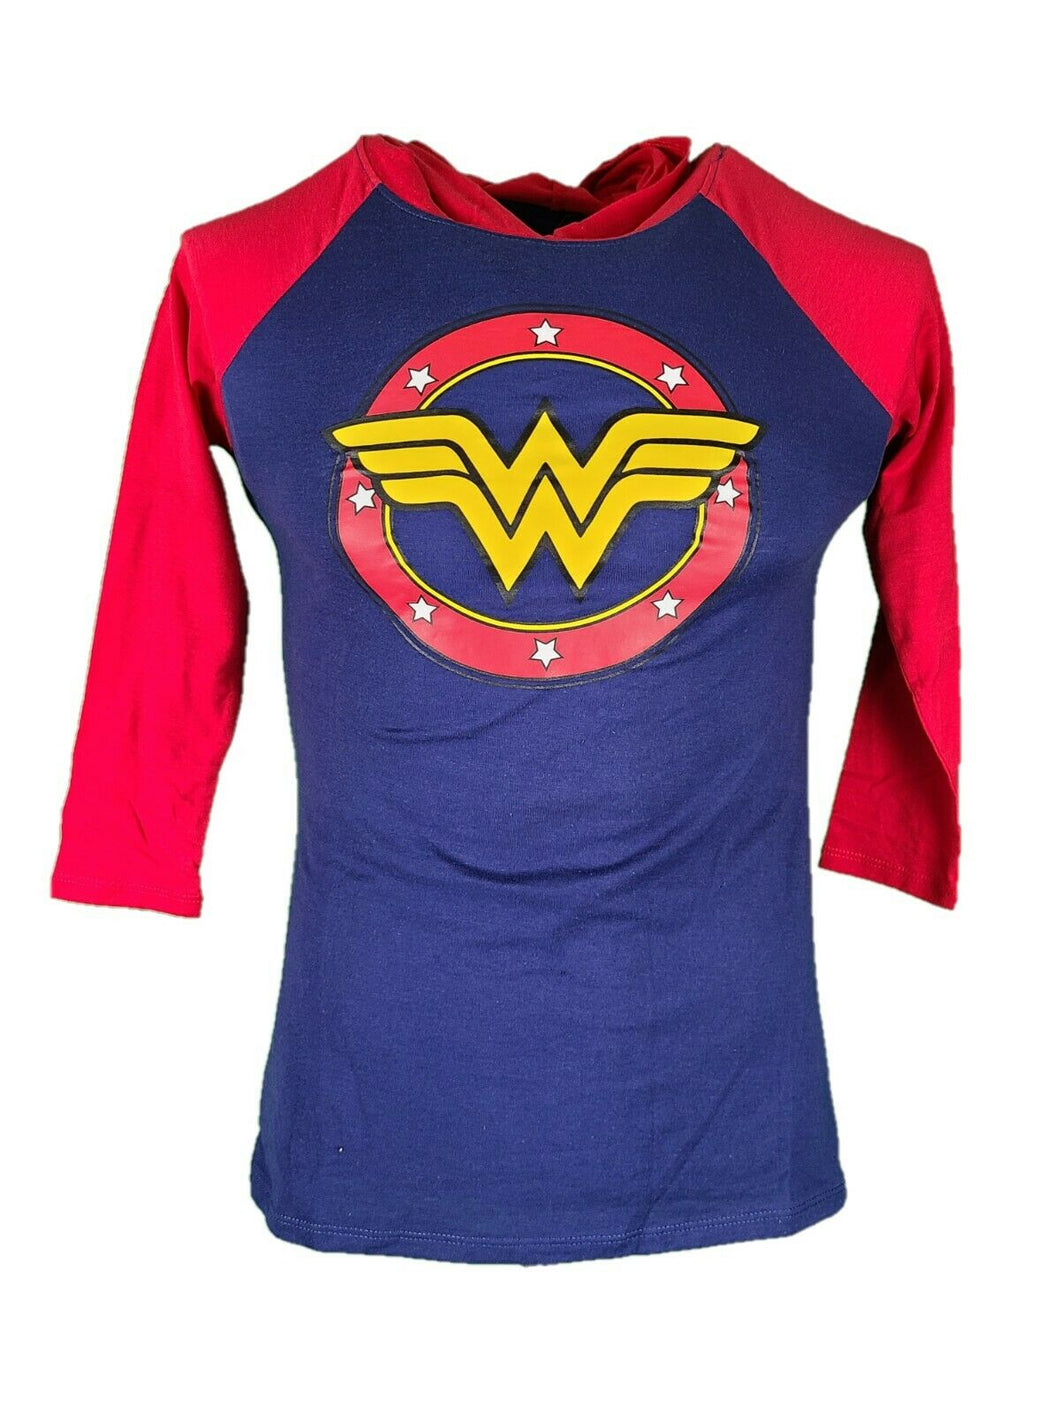 DC Comics Wonder Woman Hoodie  Shirt Girls Long Sleeve New With Tags